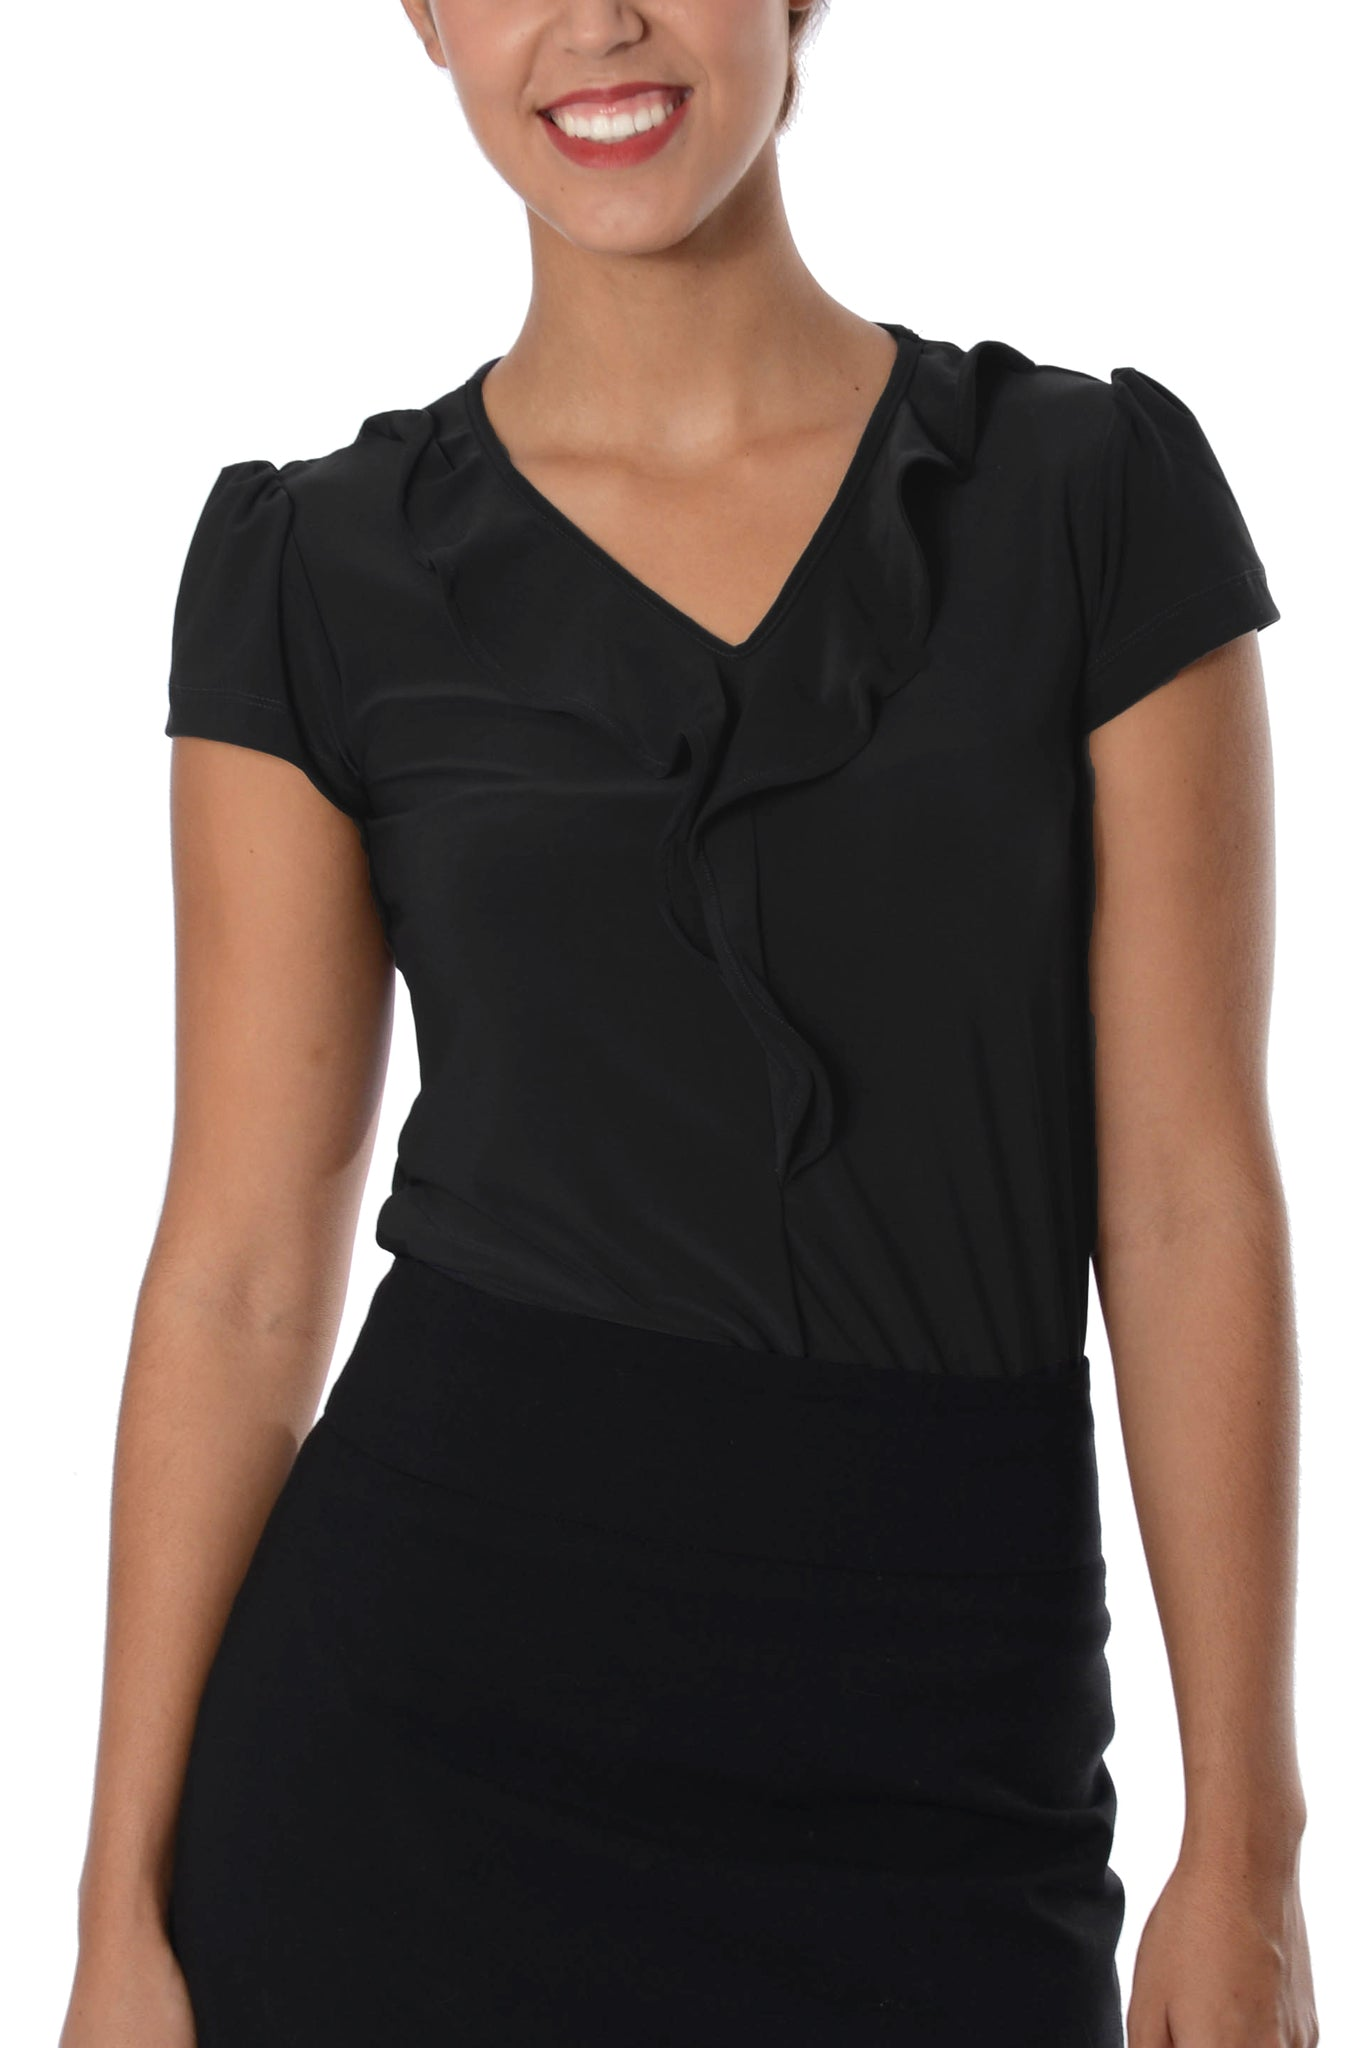 Ladies Black Ruffle Neck Top